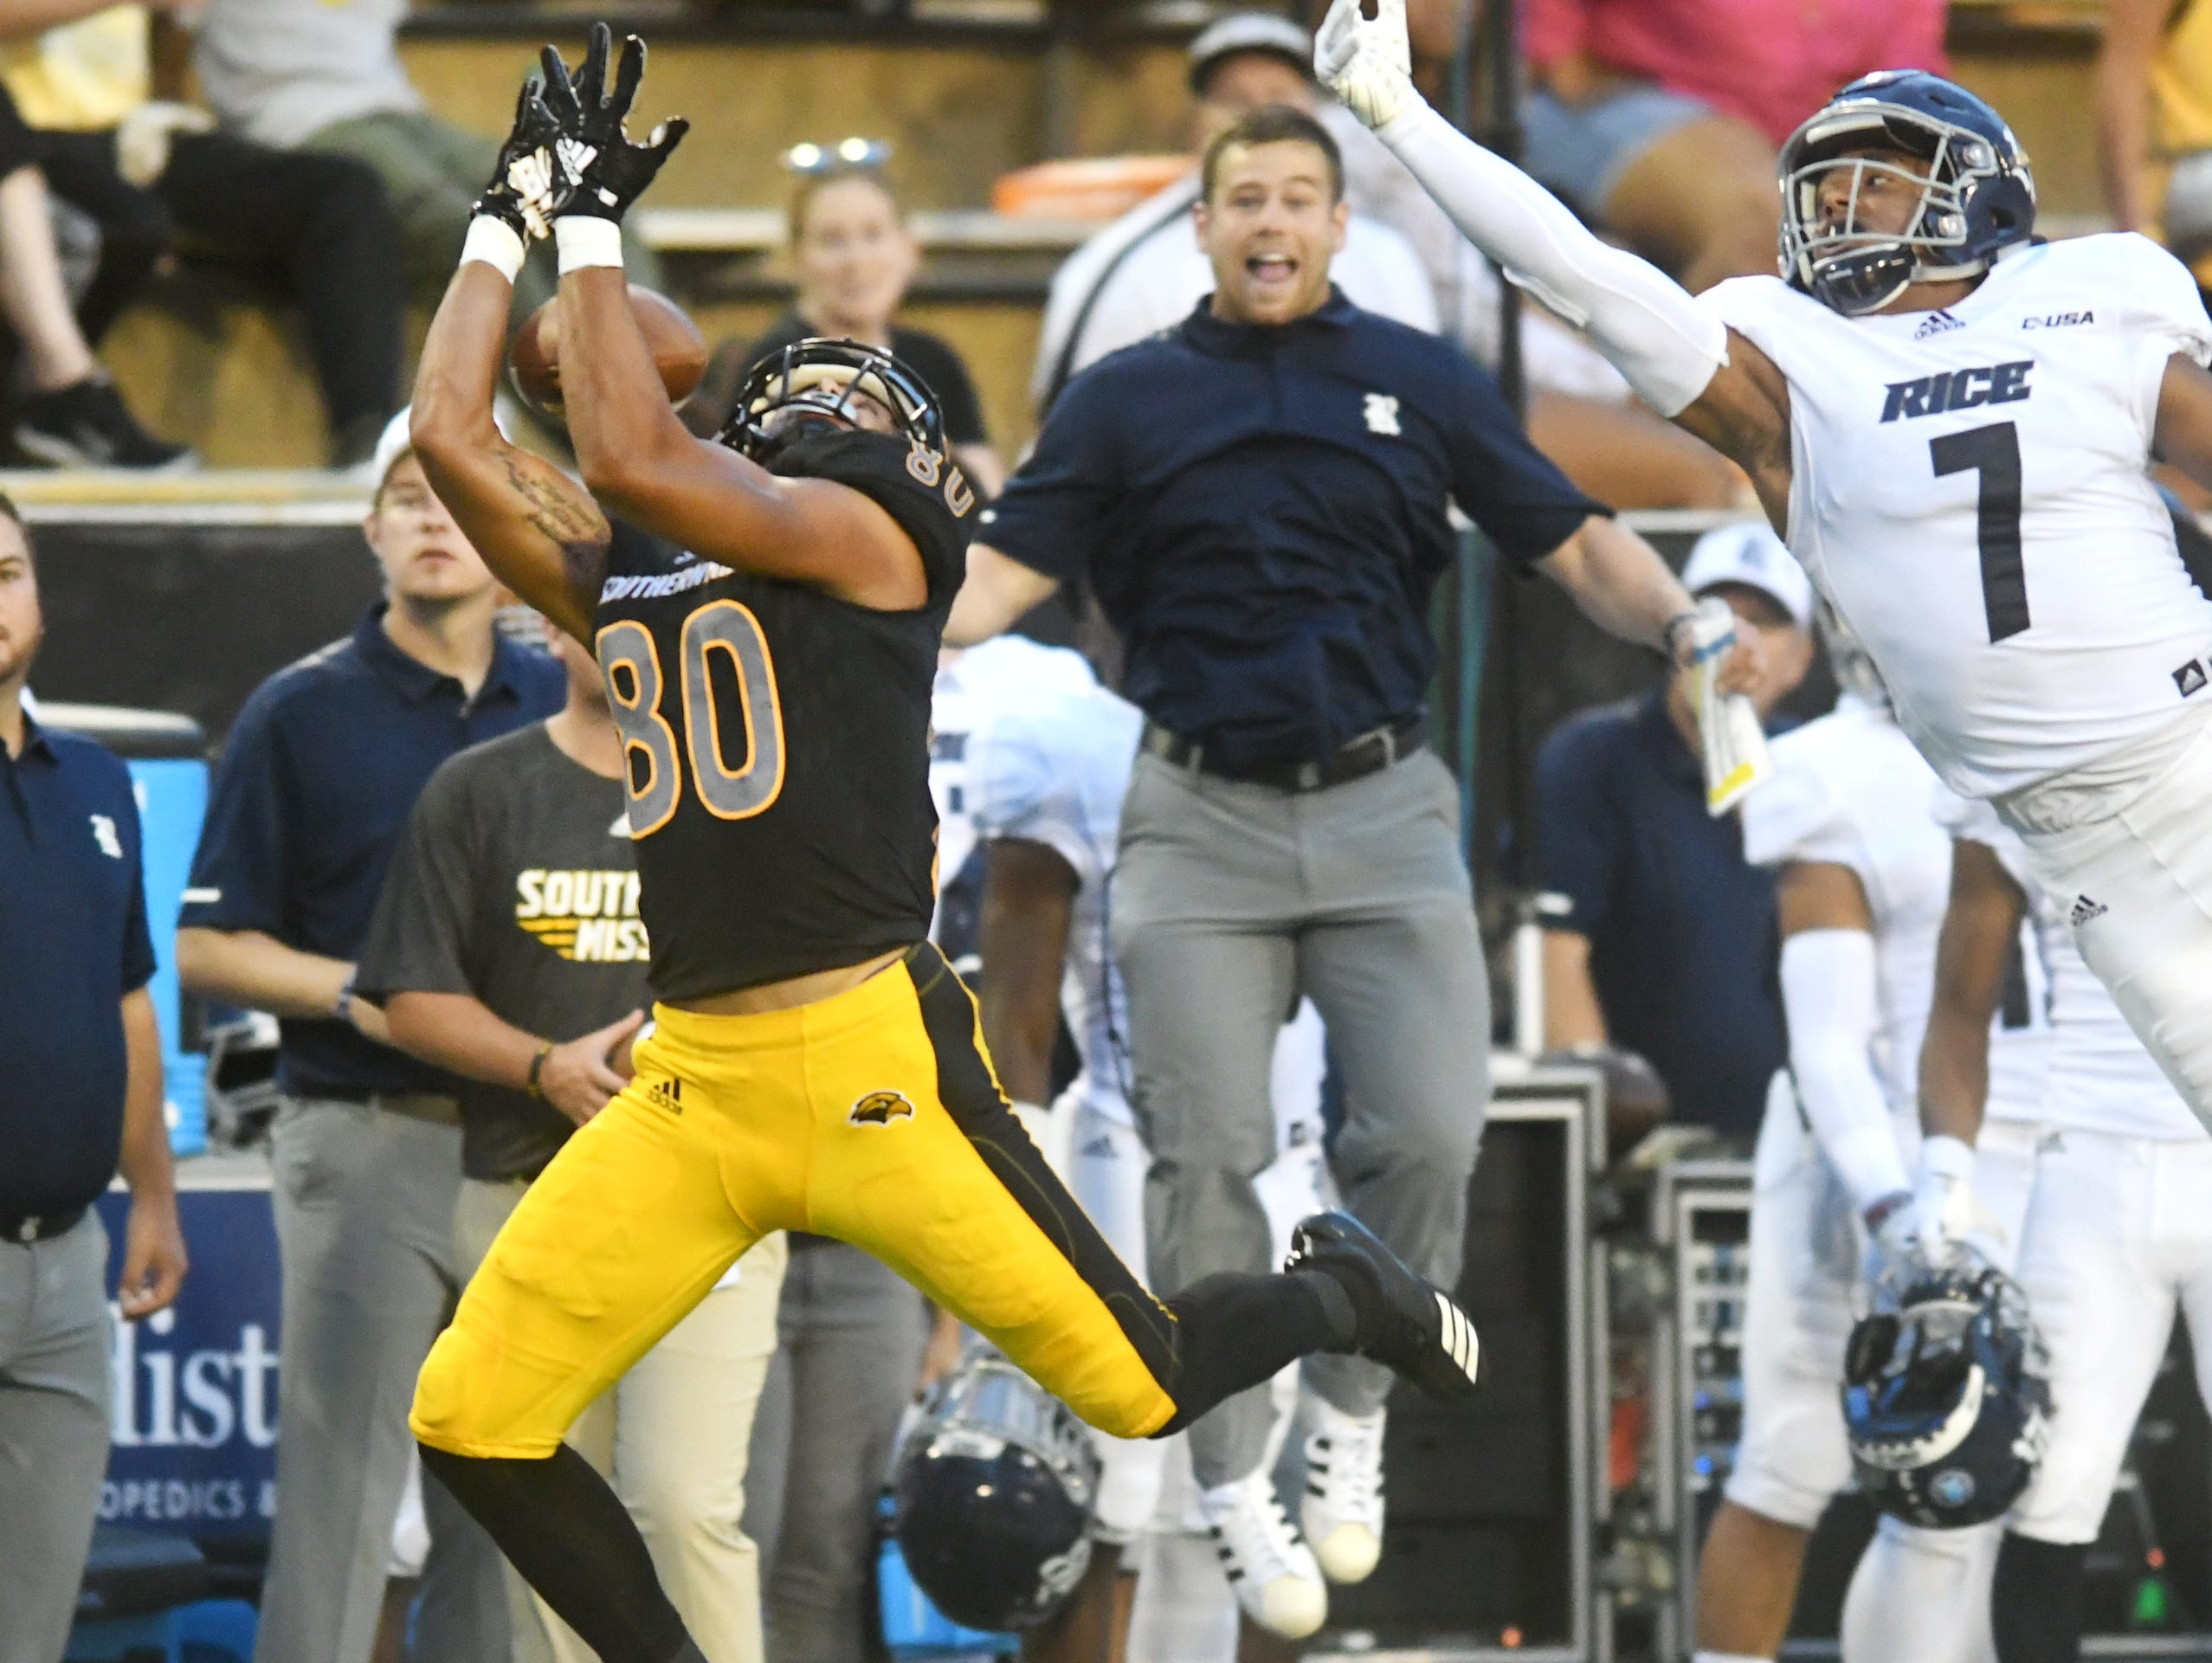 Southern Miss wide receiver Jordan Mitchell catches the ball in a game against Rice at M.M. Roberts Stadium on Saturday, September 22, 2018.